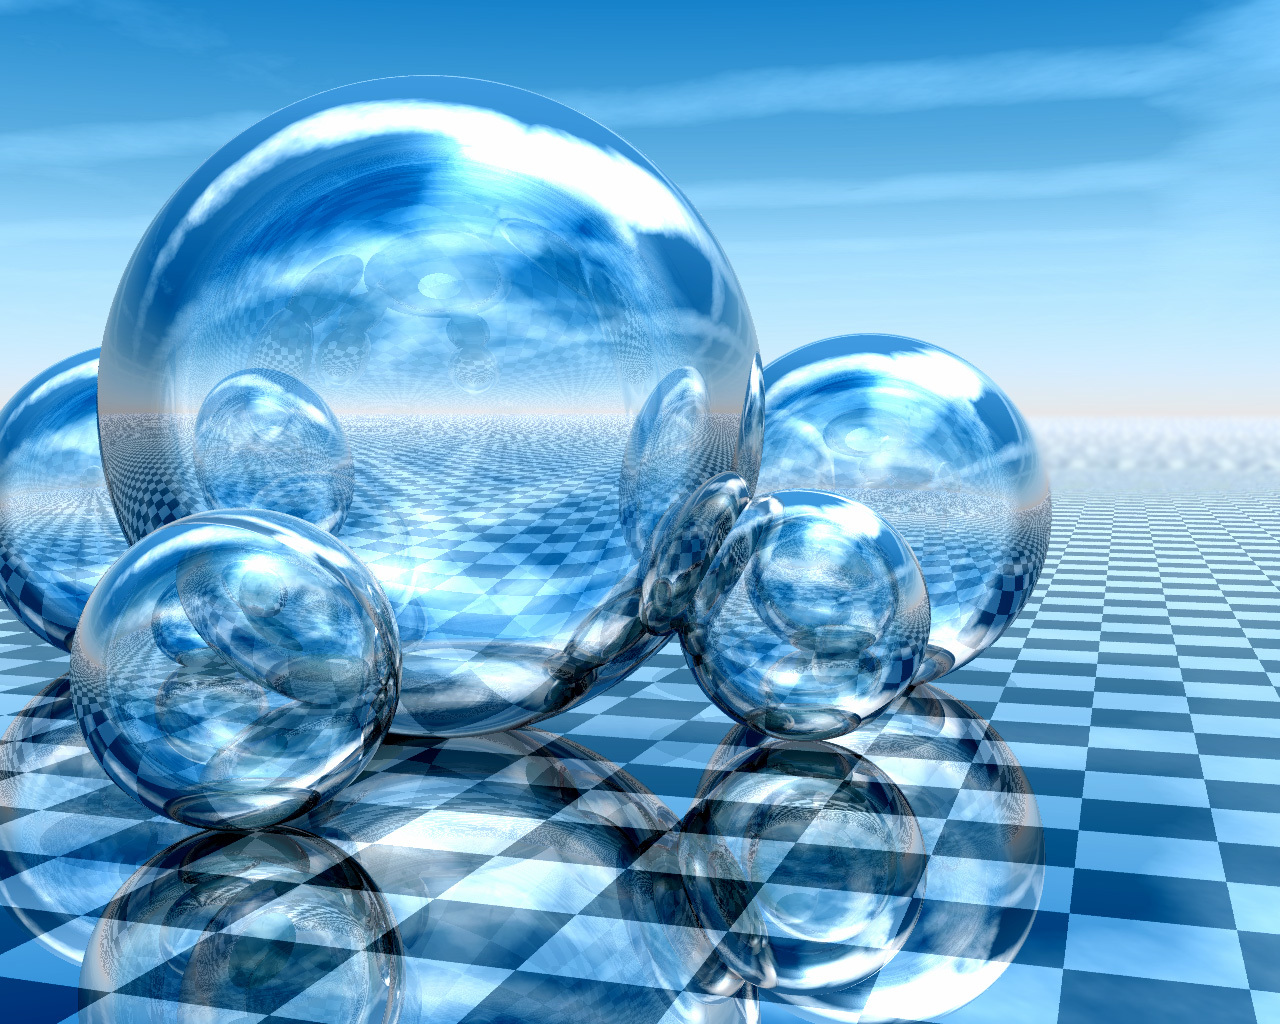 infinite checkers blue spheres HD Wallpaper